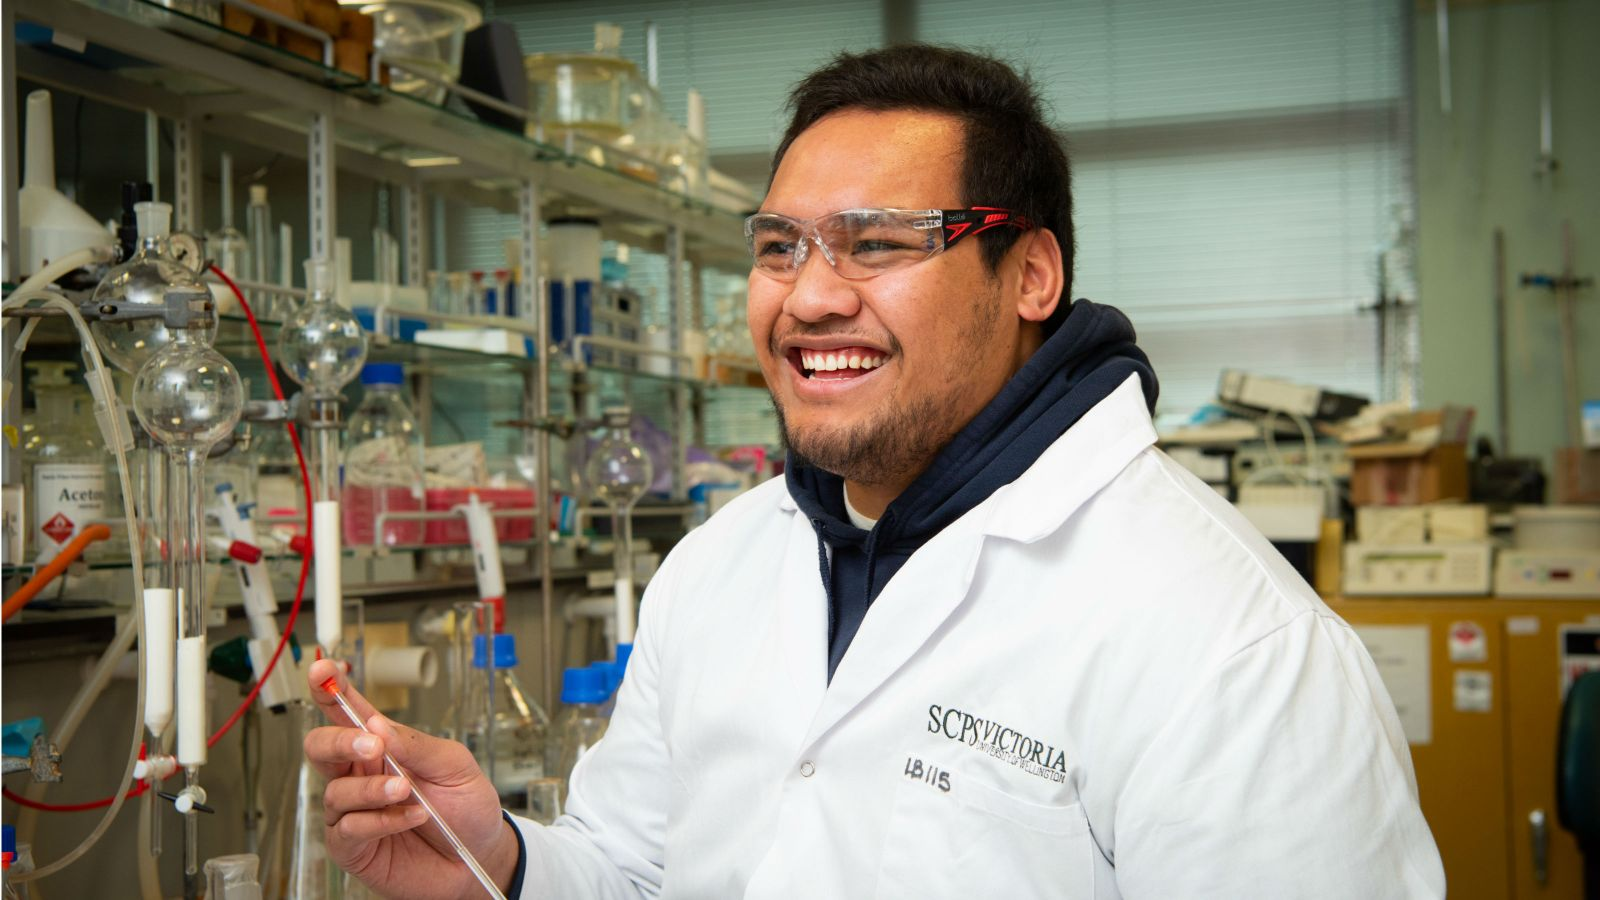 Brettelemani wears a lab coat and sits in a chemistry lab. He is laughing at something off camera and holding equipment.